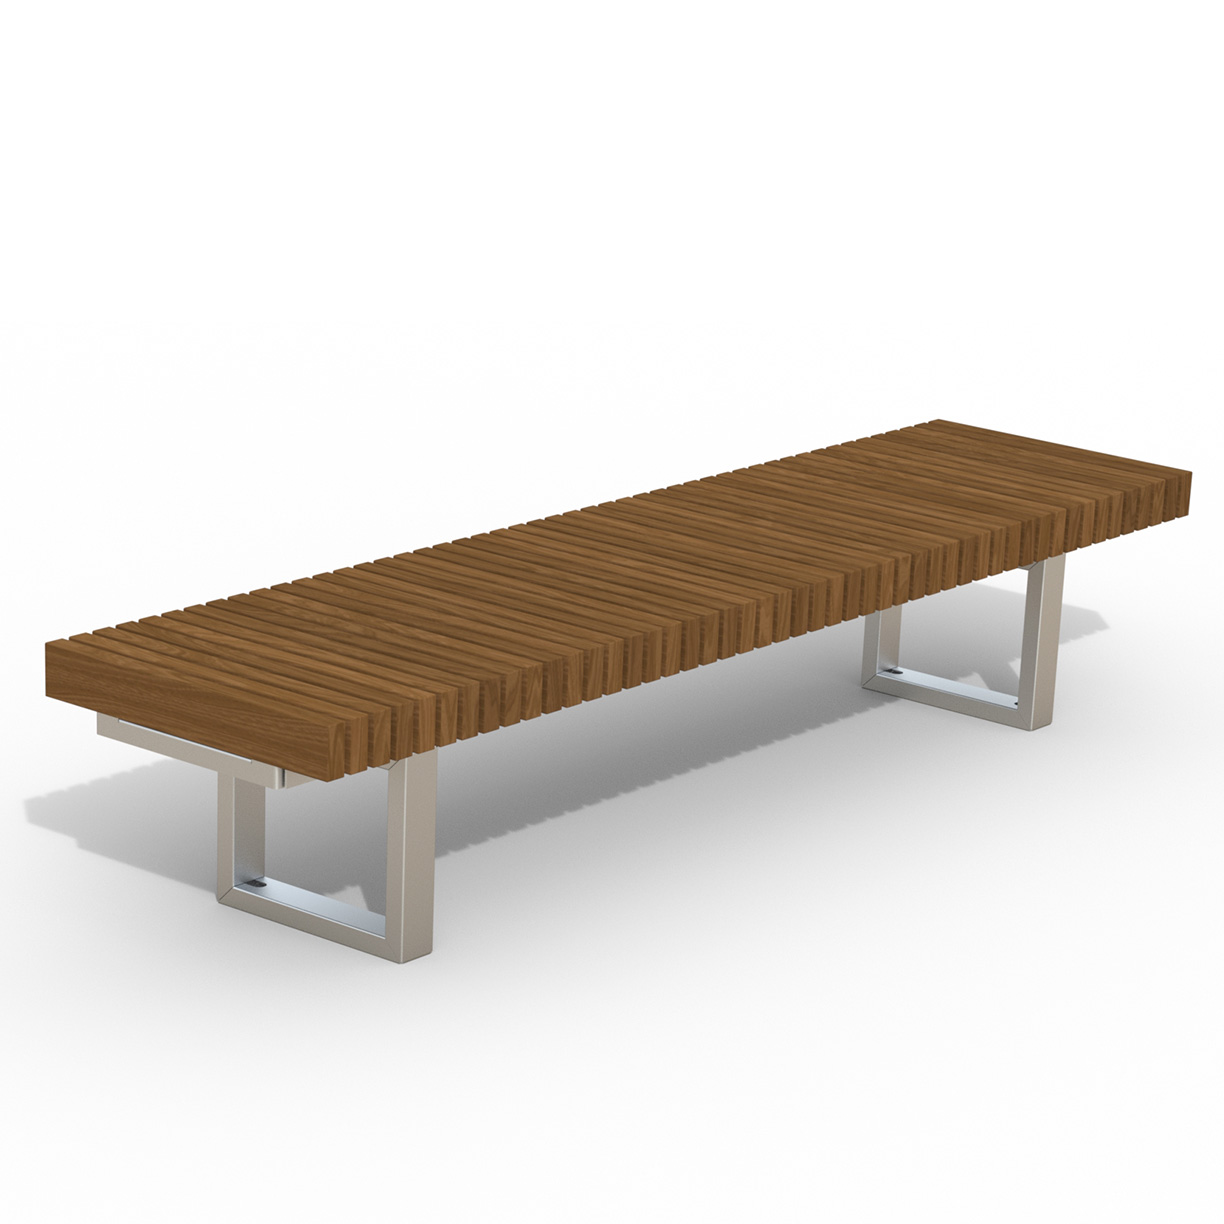 INF24L8T  Infinity Collection 2' x 8' Linear Thermory Slat Bench